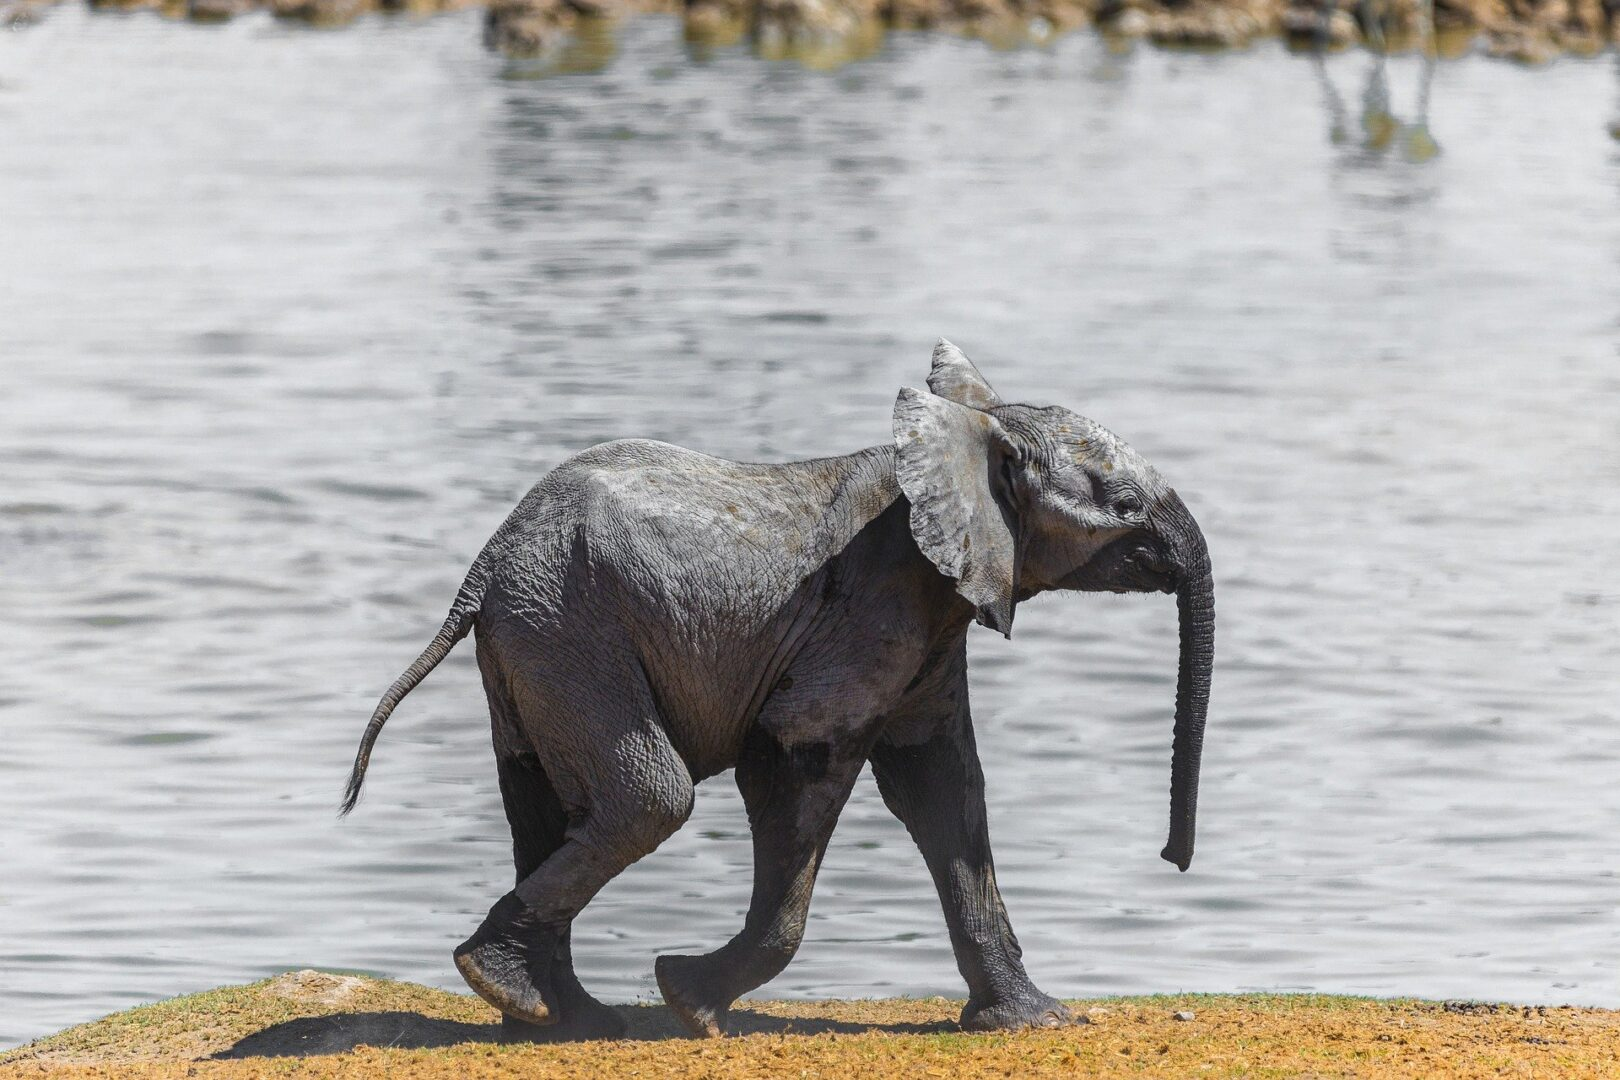 Baby Elephant walking by the water